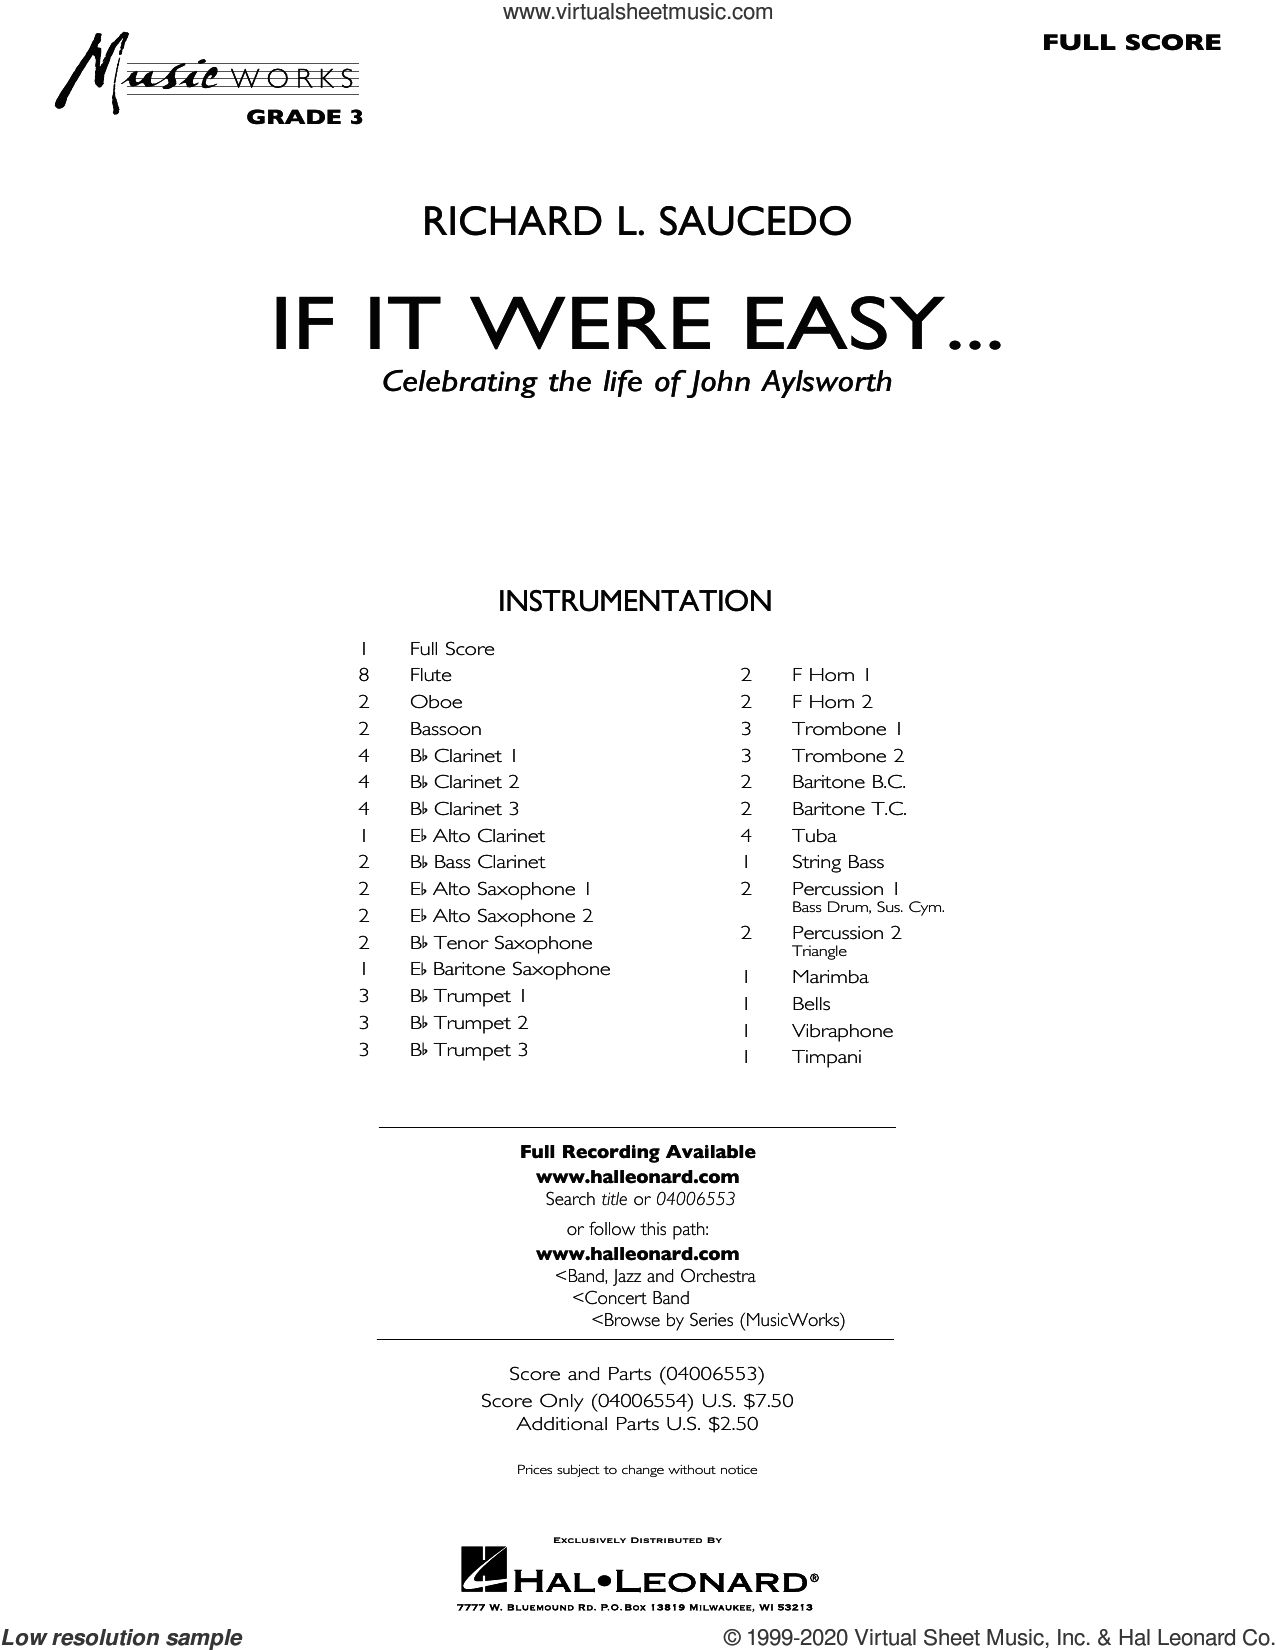 If It Were Easy... (COMPLETE) sheet music for concert band by Richard L. Saucedo, intermediate skill level